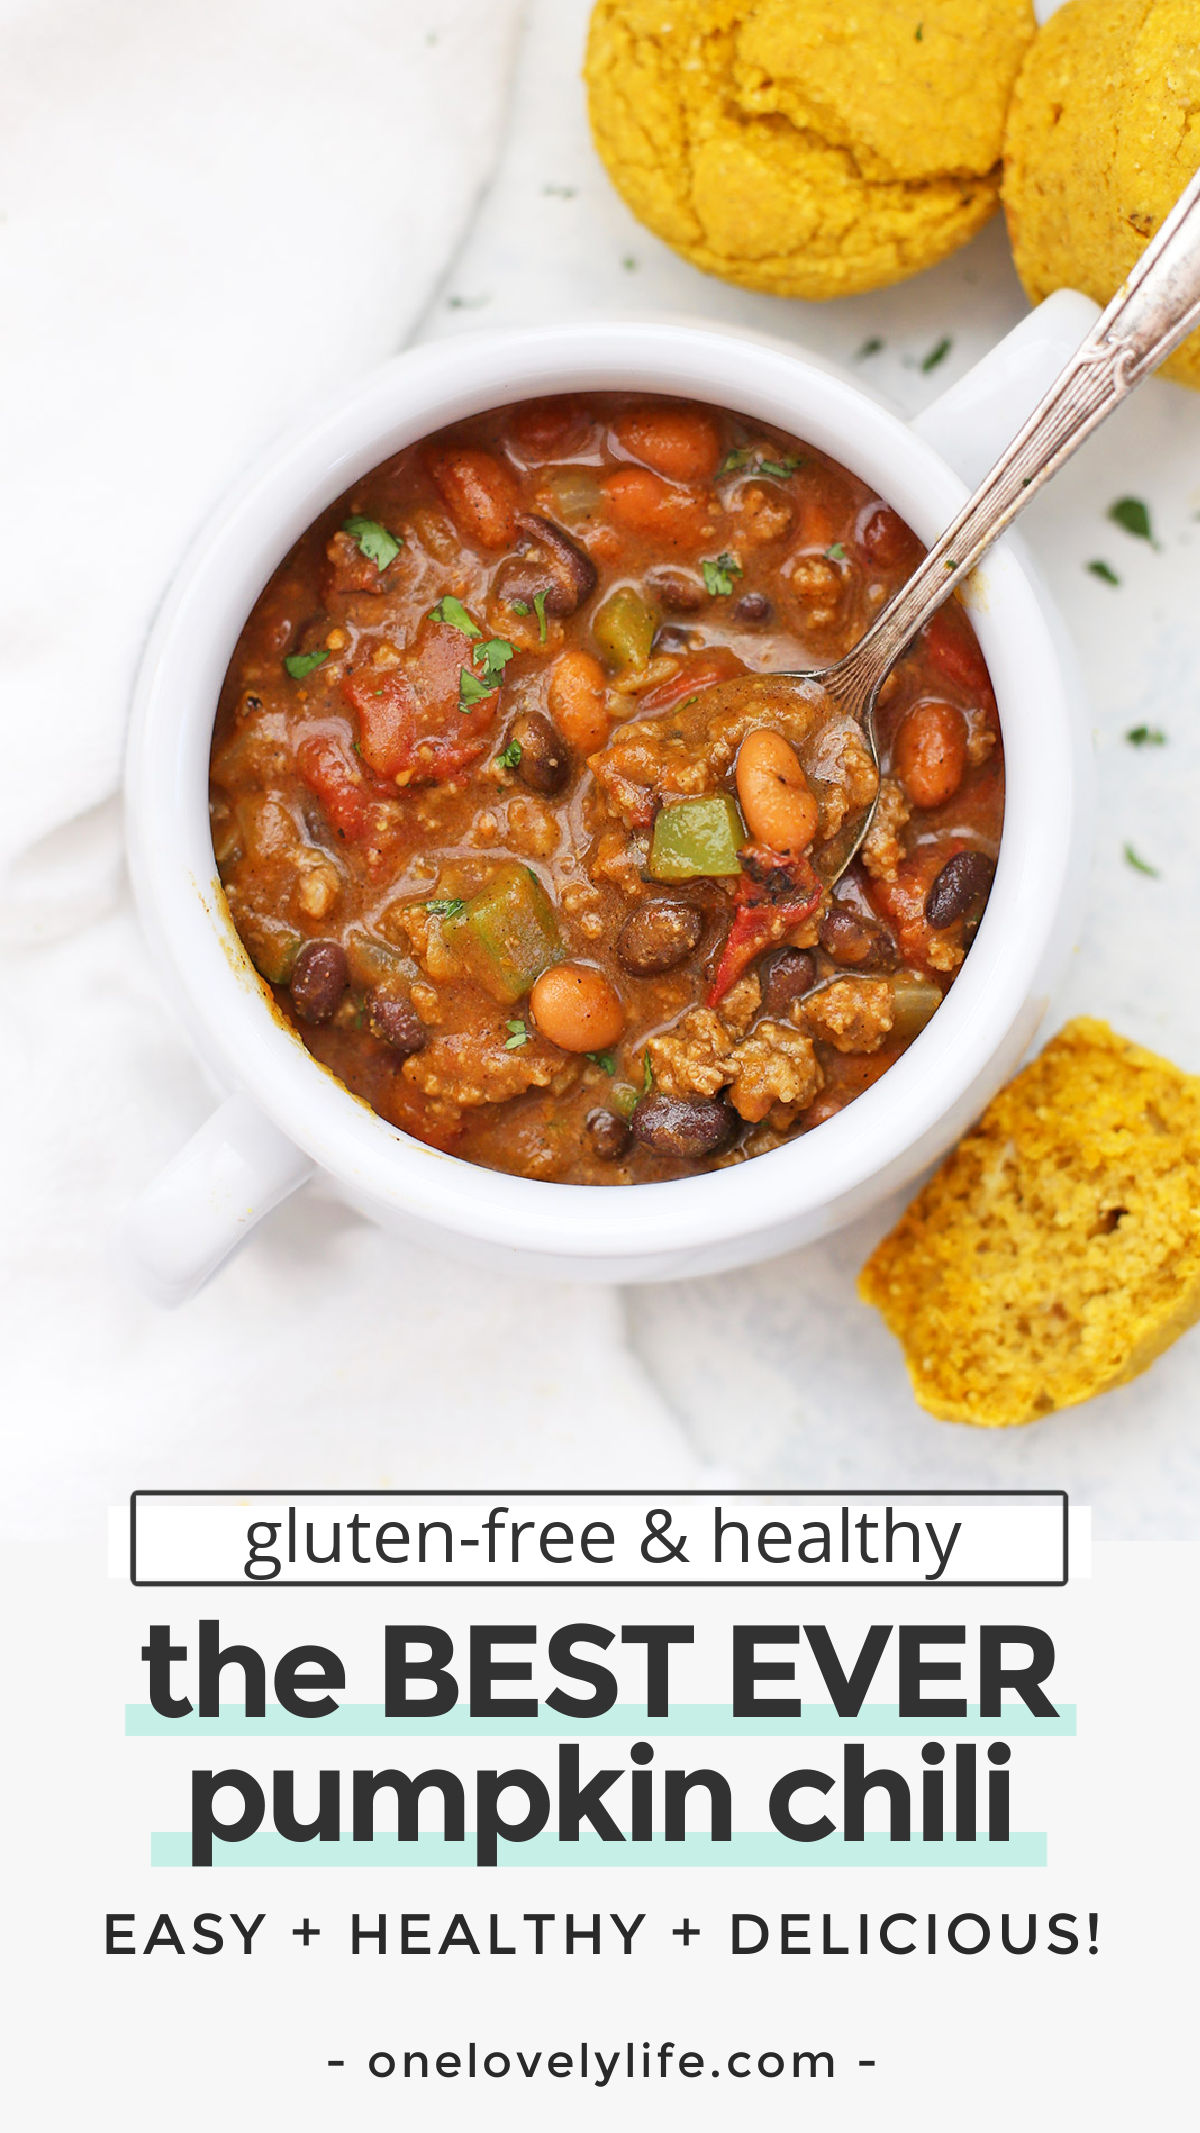 The BEST EVER Pumpkin Chili - This healthy pumpkin chili recipe might just win you a prize! (gluten-free, paleo-friendly and vegan-friendly!) // savory pumpkin recipes // pumpkin soup // how to make pumpkin chili // chili cook-off winner #pumpkin #chili #chilicookoff #glutenfree #dairyfree